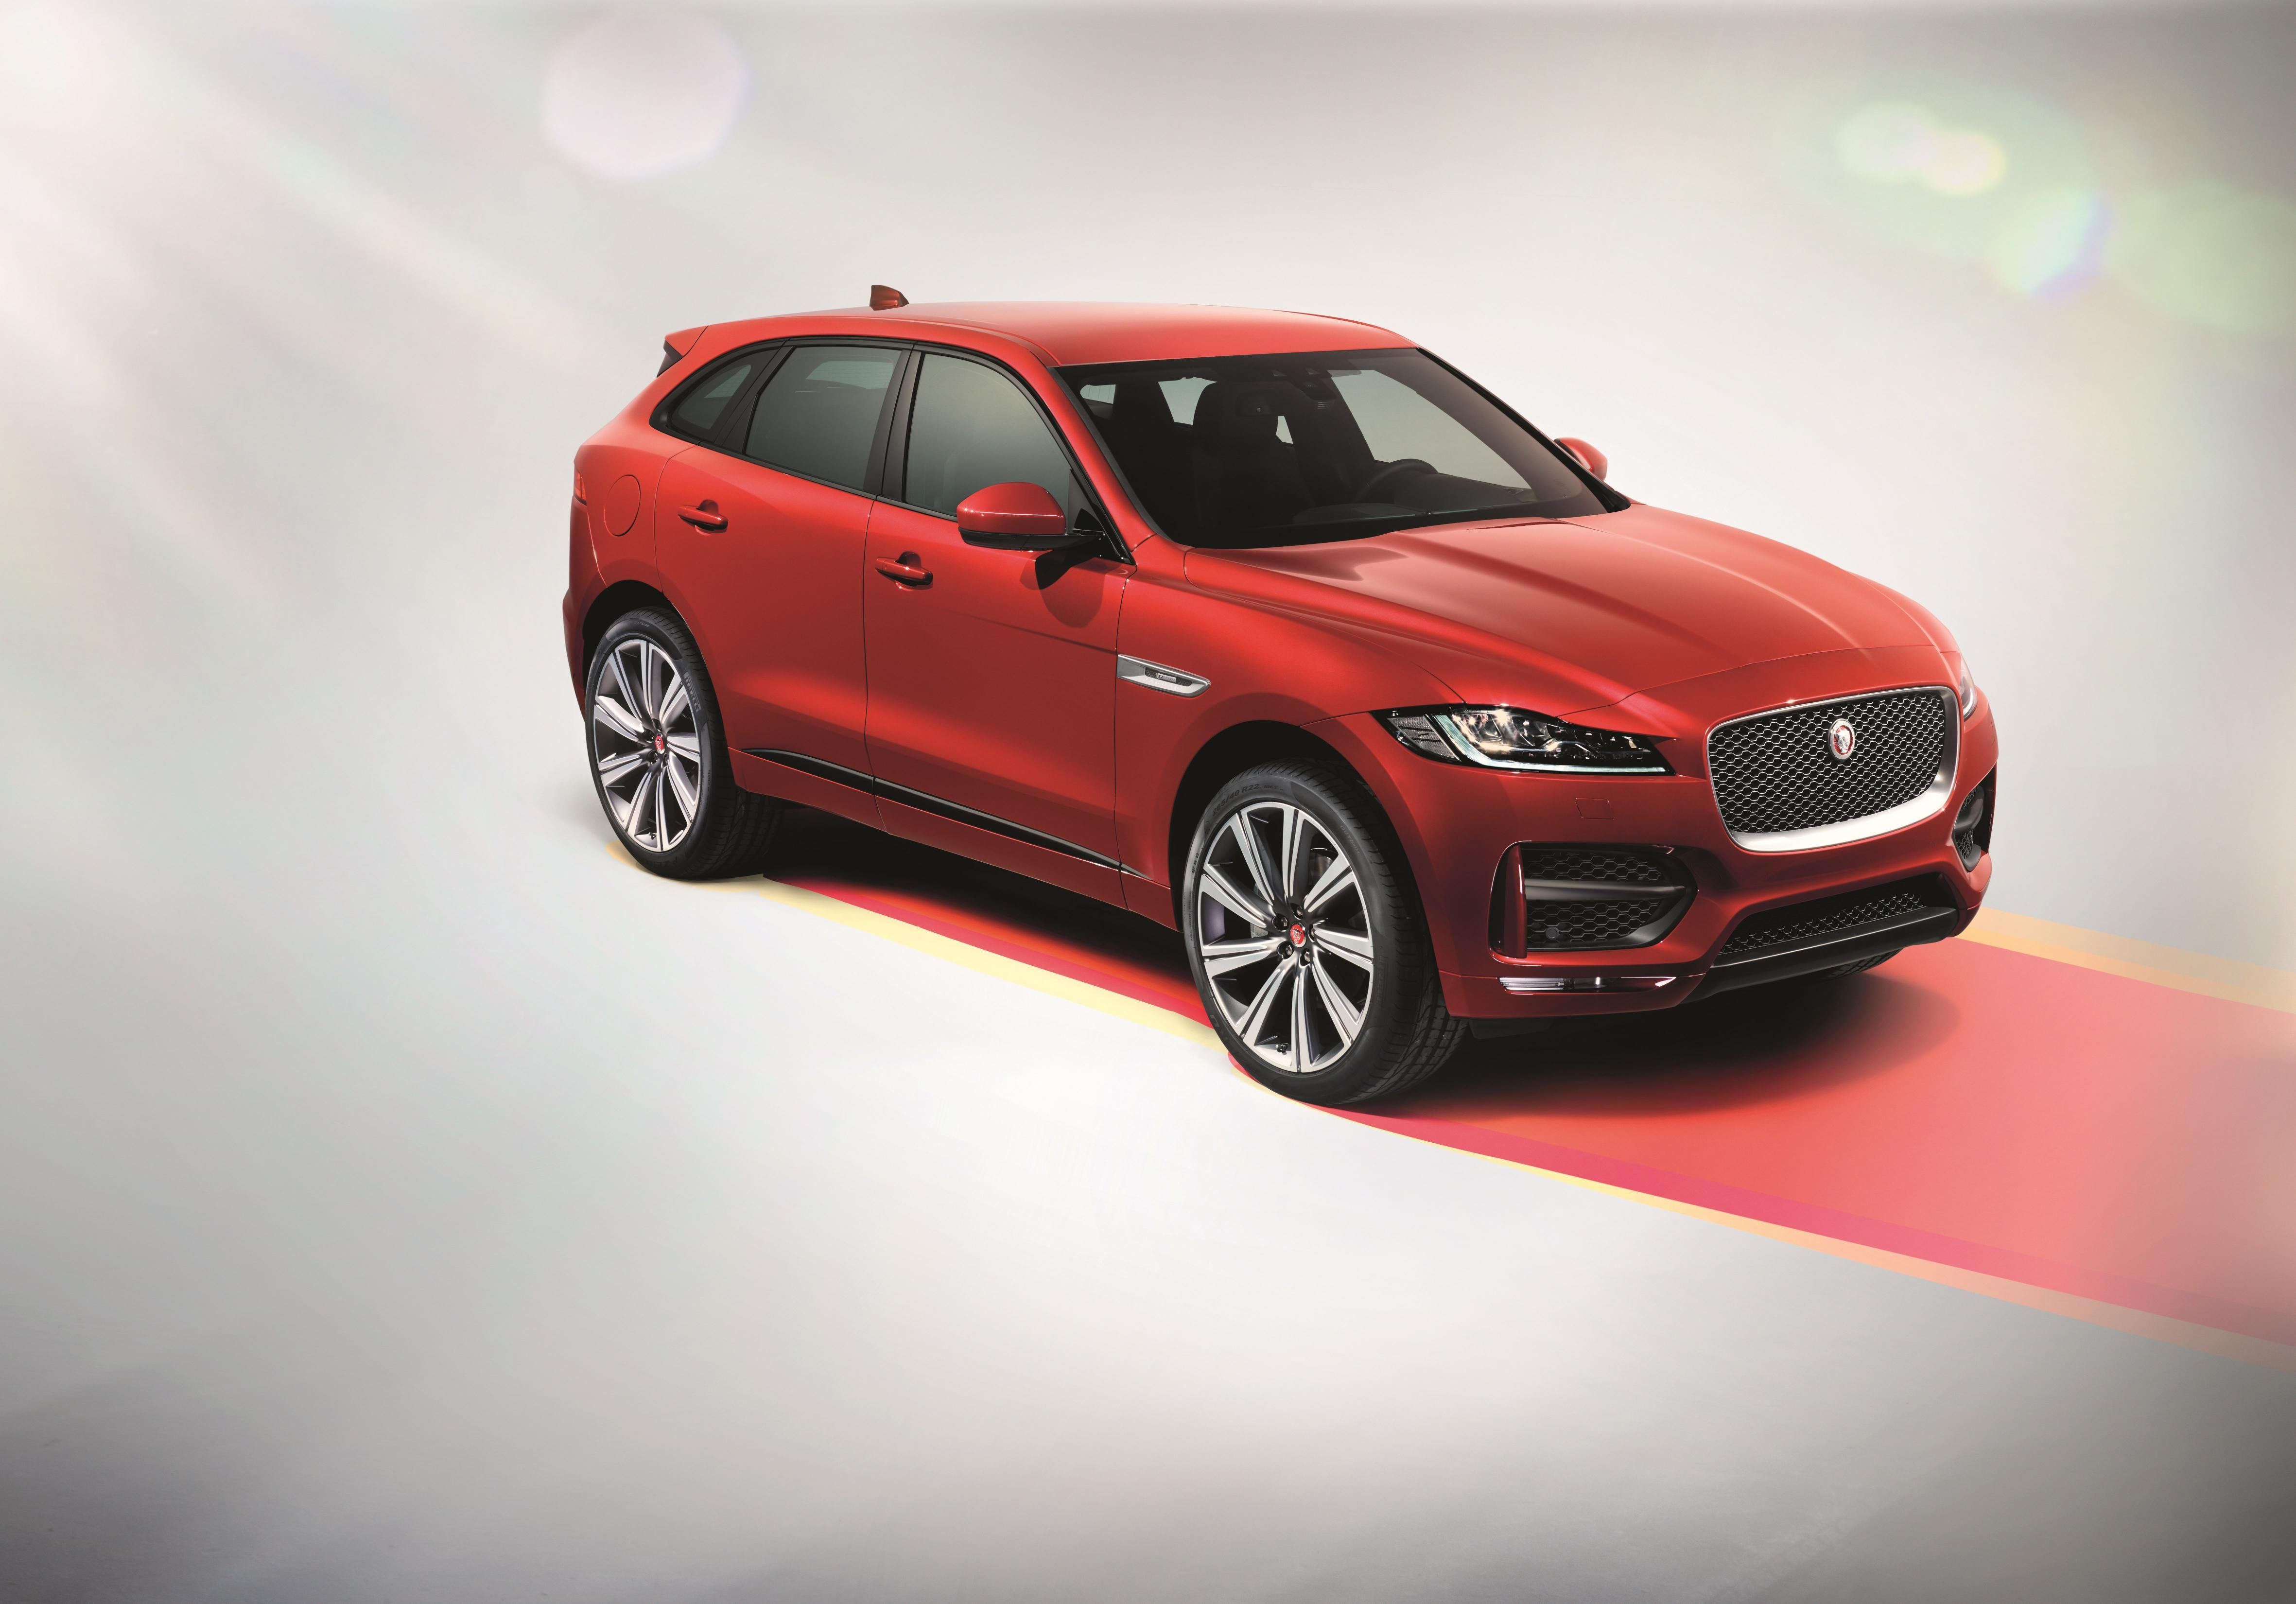 look new at pace f rsport a fpace web jaguar all studio closer the suv